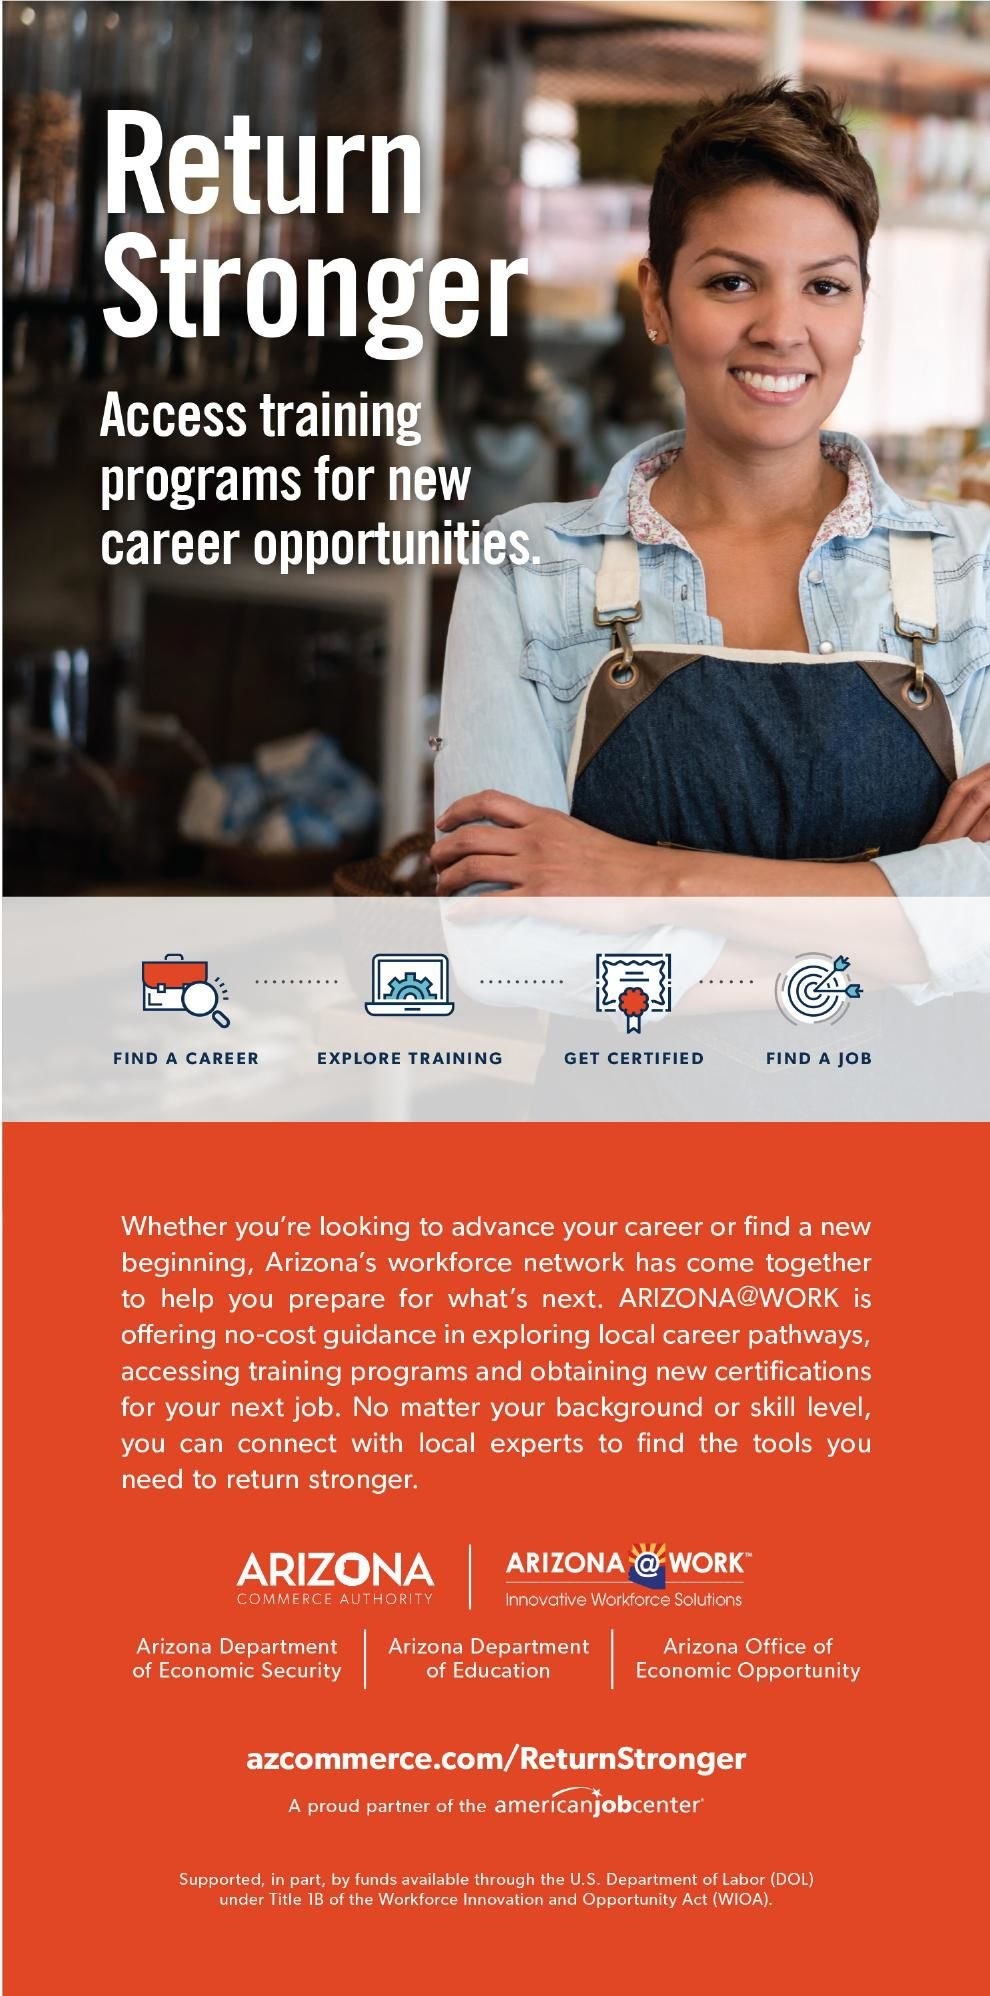 Training Programs for New Career Opportunities